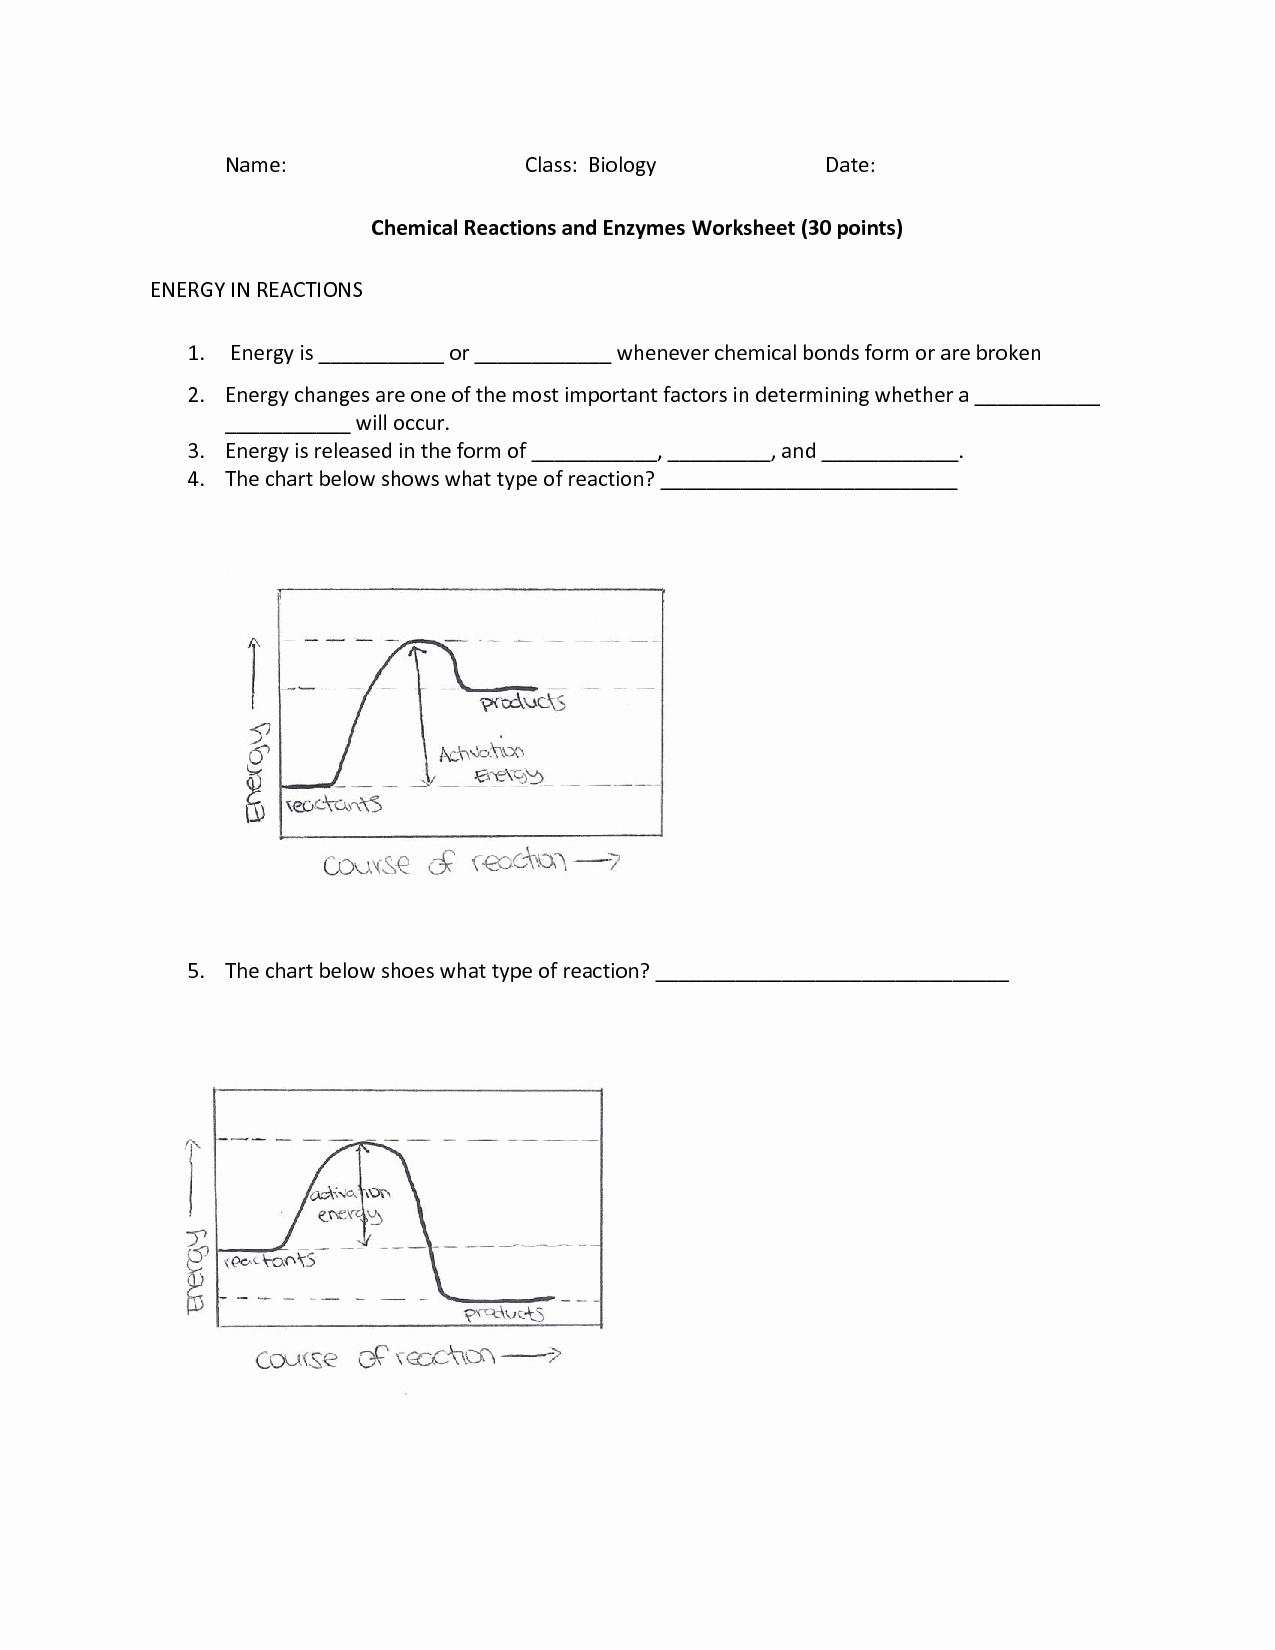 Enzyme Reactions Worksheet Answers Awesome 20 Best Of Enzymes and Chemical Reactions Worksheet